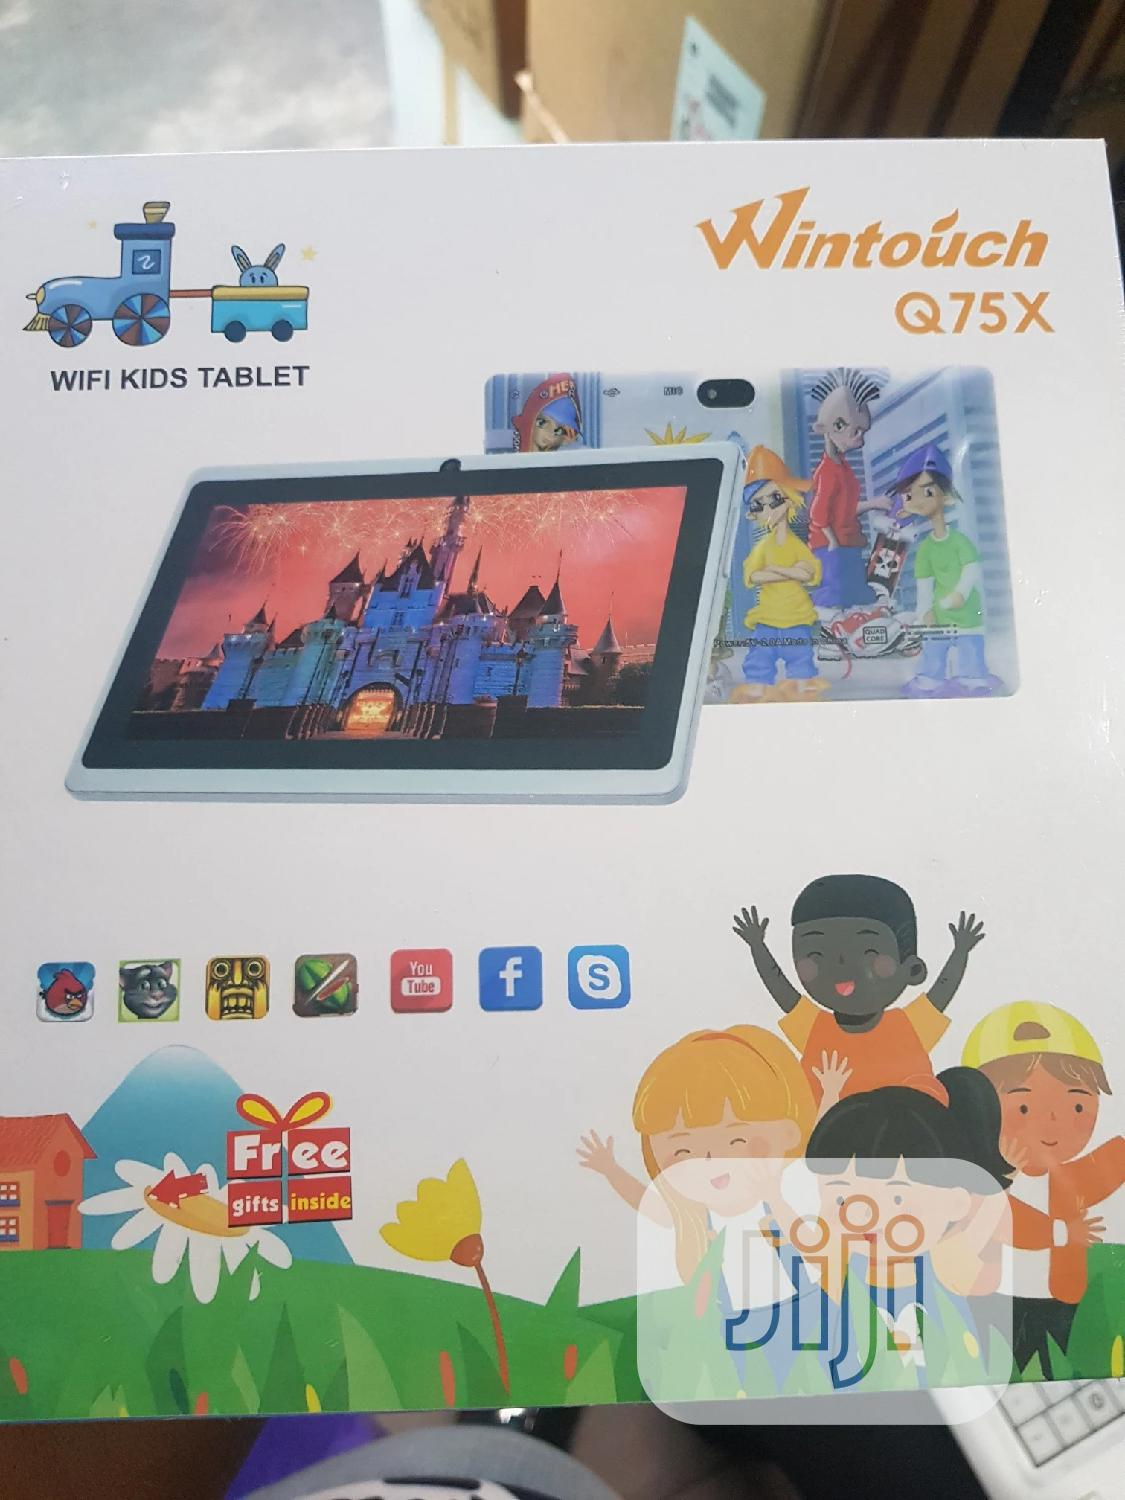 New Wintouch Q93S 4 GB